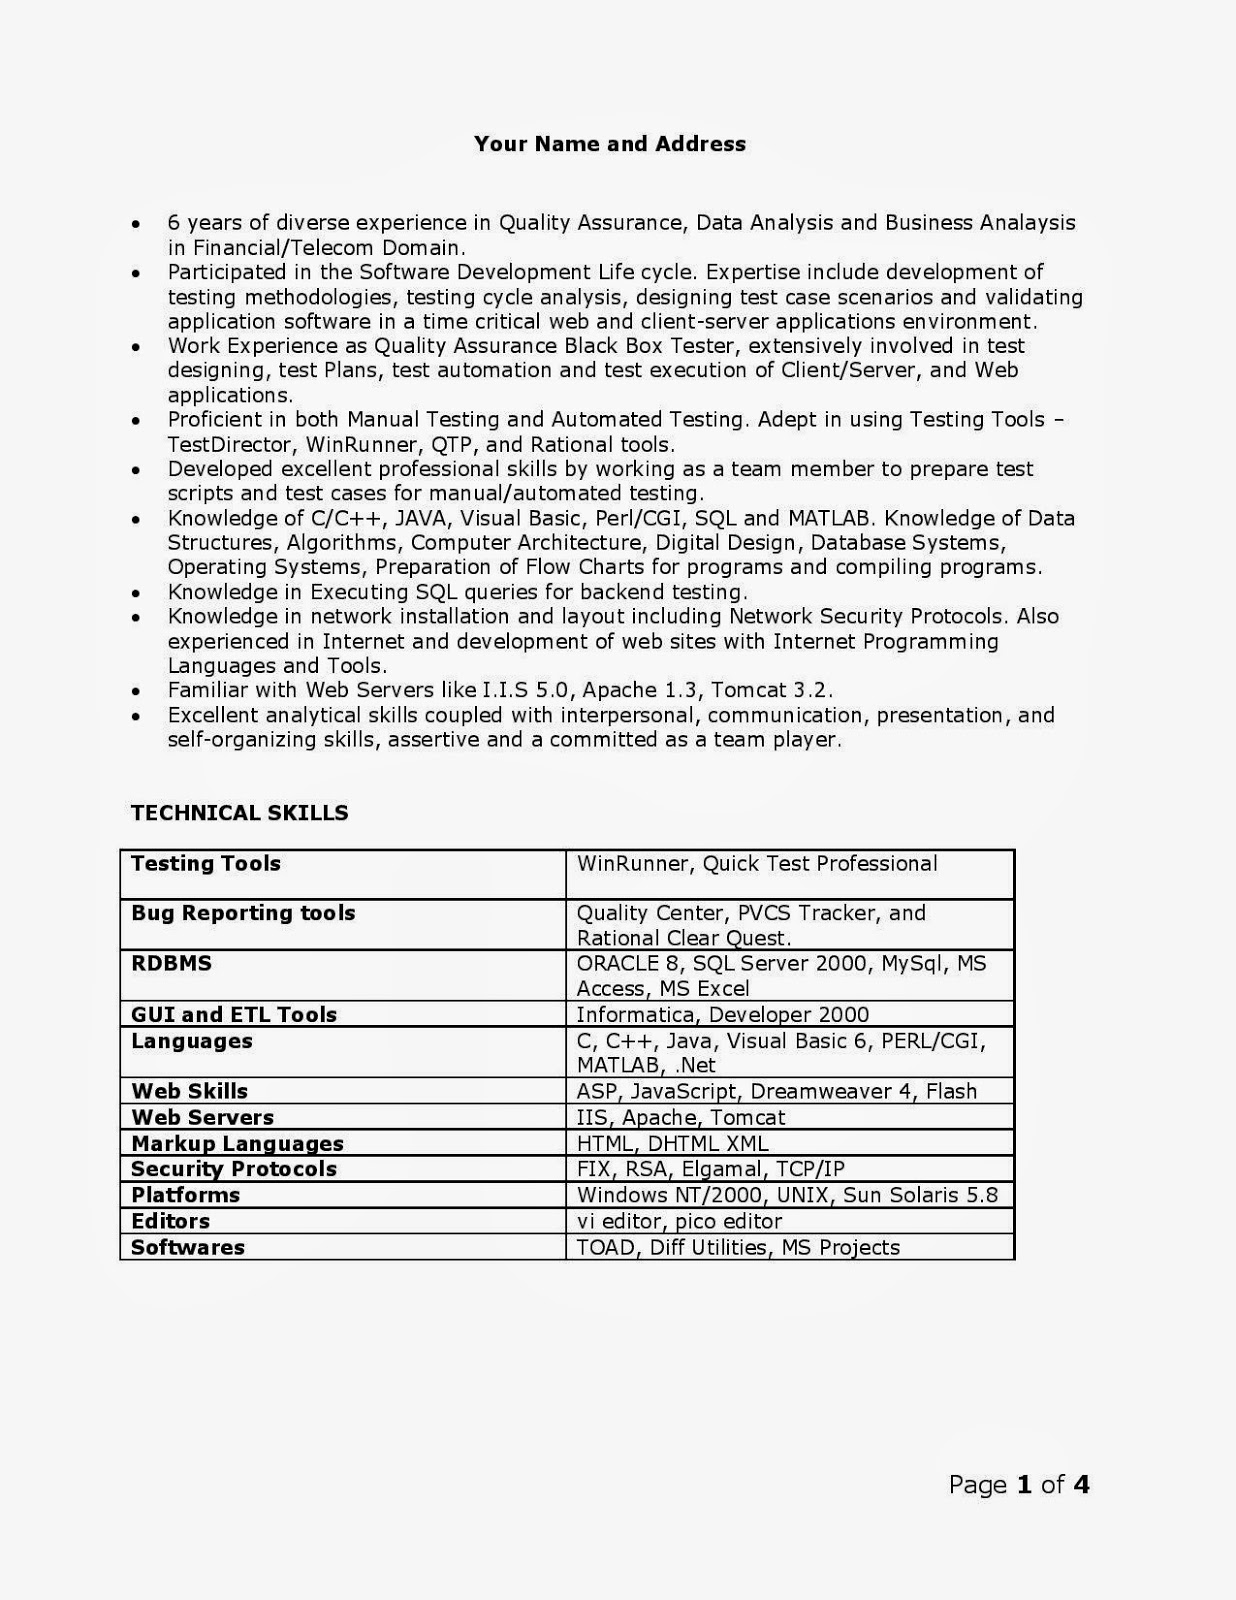 Software Qa Manager Resume Examples Ypsalon Simple Sample Resume Templates  Photo Software Testing Resume Samples Sample